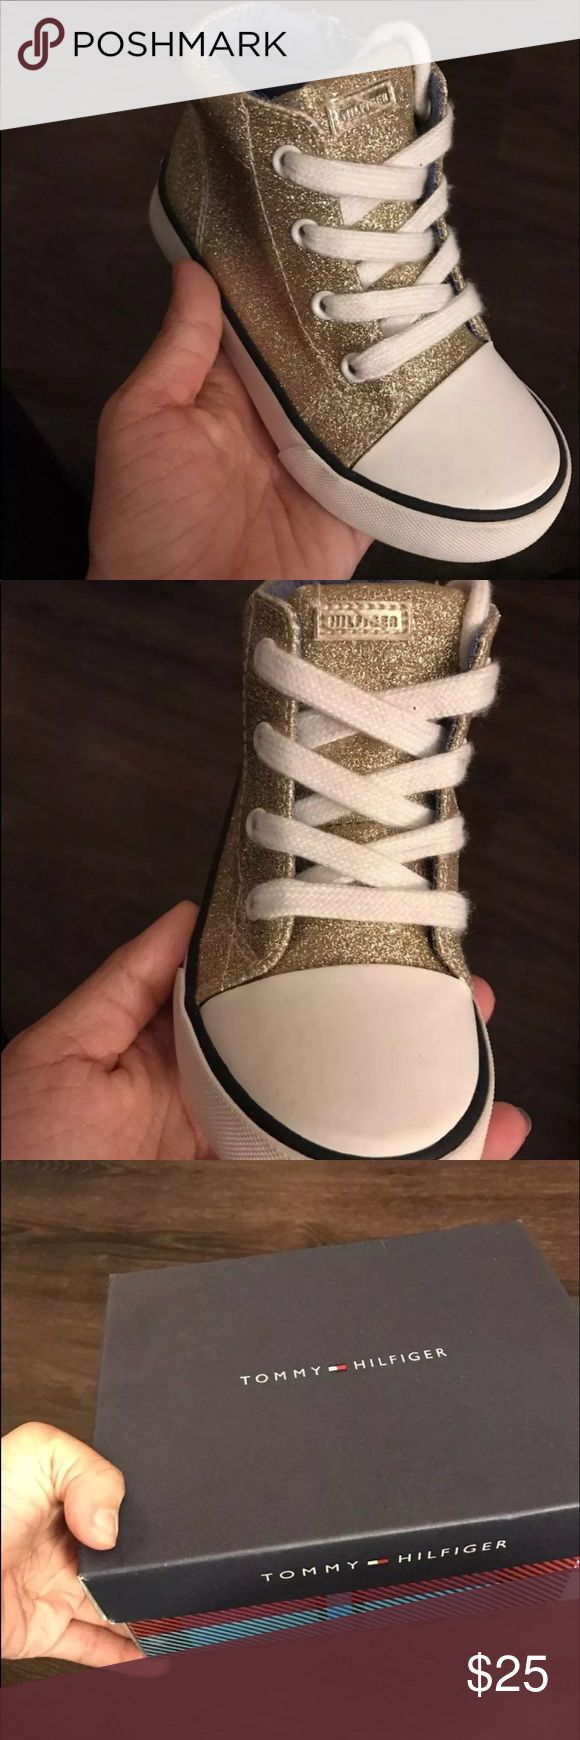 New Toddler Girls Tommy Hilfiger Shoes Gold champagne glitter zip up shoes  Size 8 (toddler)  New in box  Bought for $55 Perfect Christmas gift ! Tommy Hilfiger Shoes Sneakers